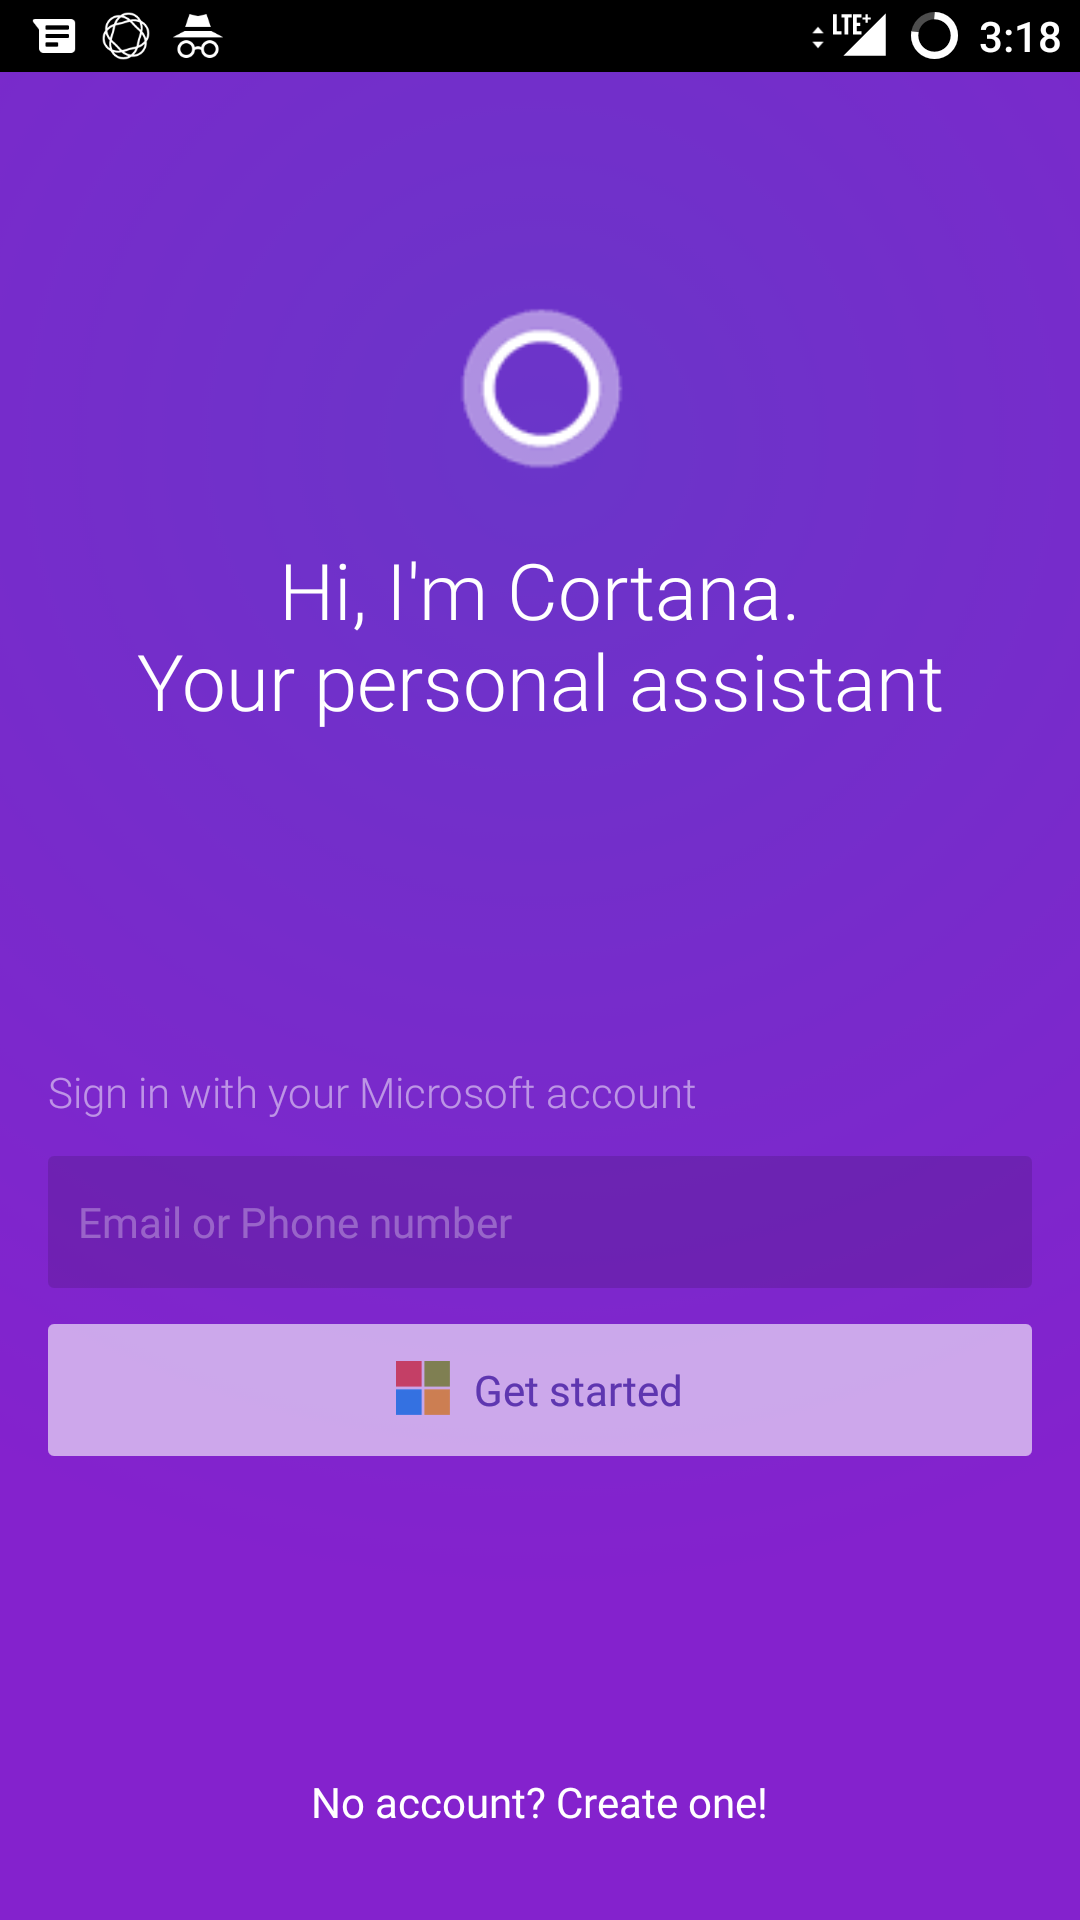 Cortana change your voice to mail - Previous